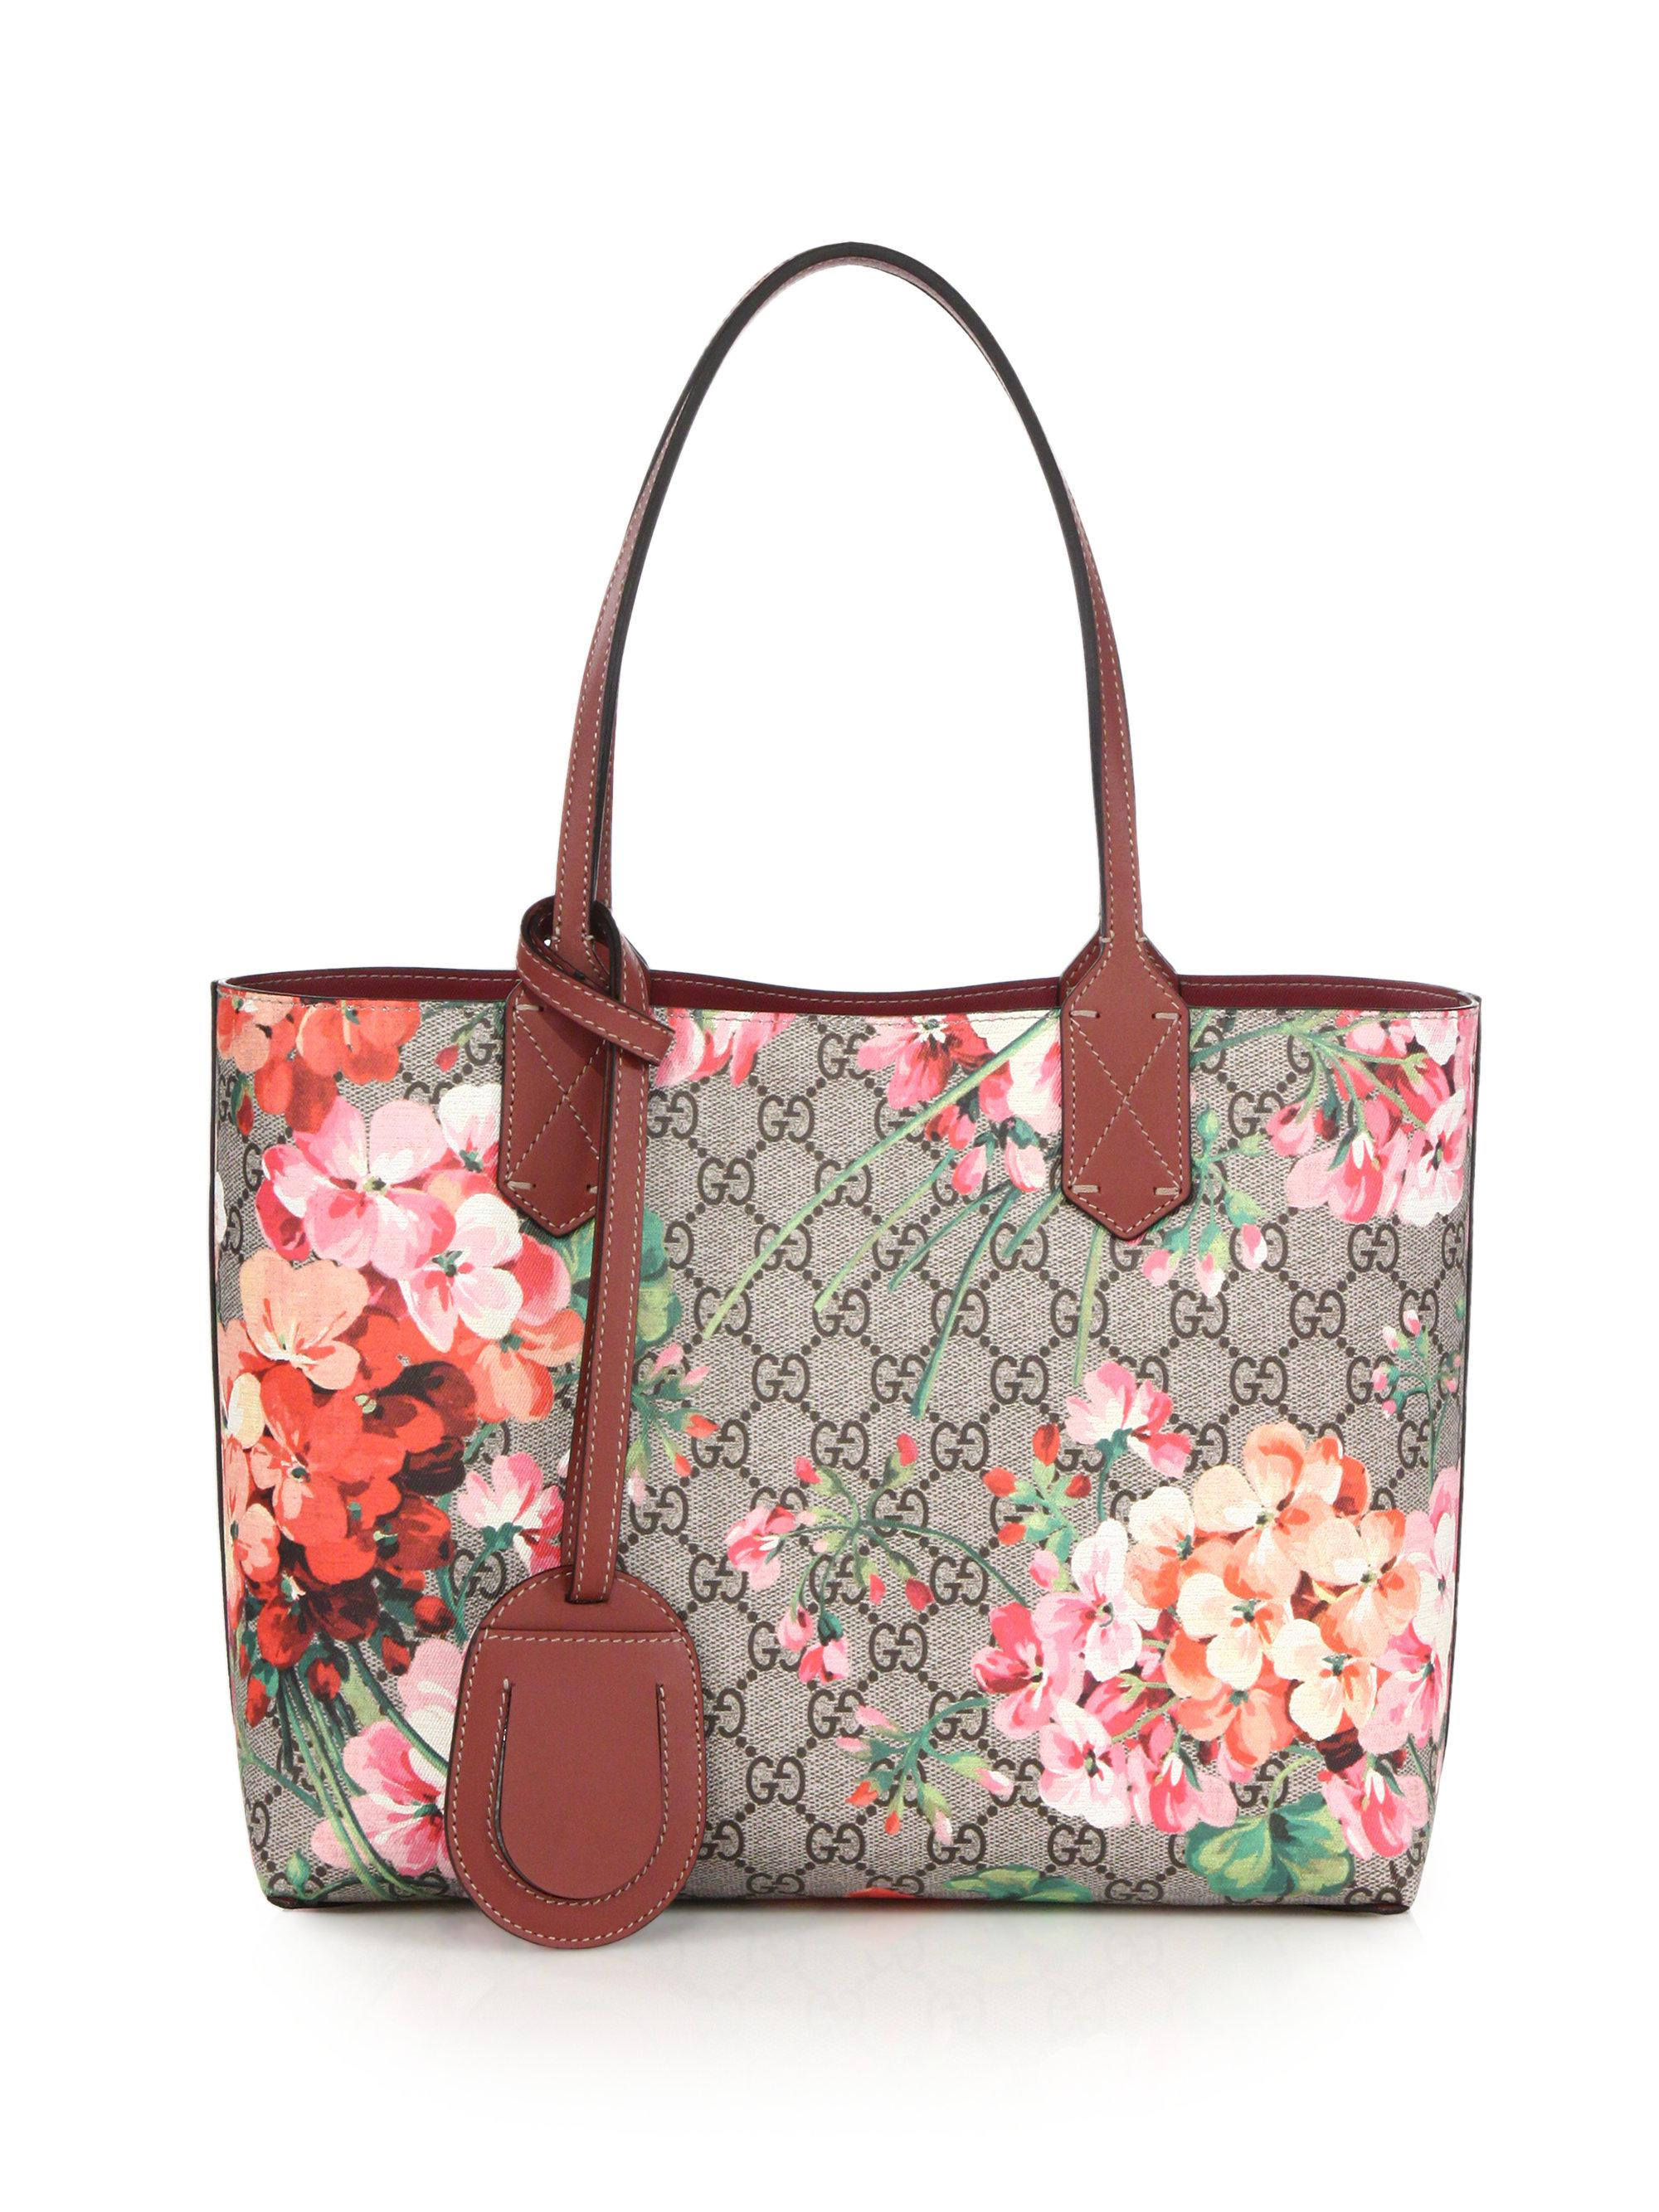 653e0825ed0 Lyst - Gucci Gg Blooms Small Reversible Tote in Pink